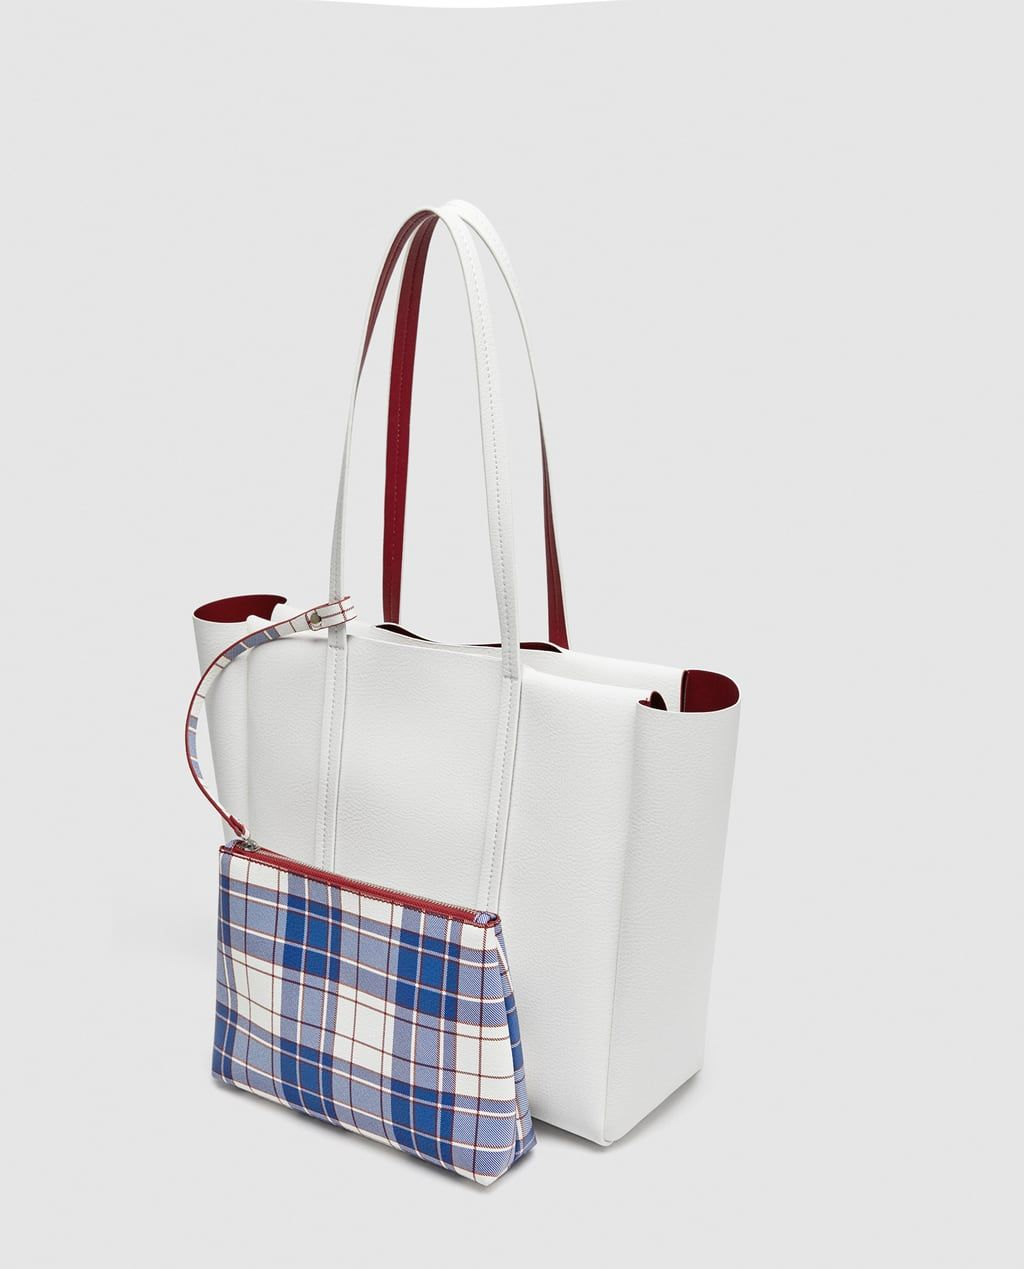 95075a8bd28 REVERSIBLE TOTE BAG WITH VERTICAL LINES | BAGGS | Reversible tote ...